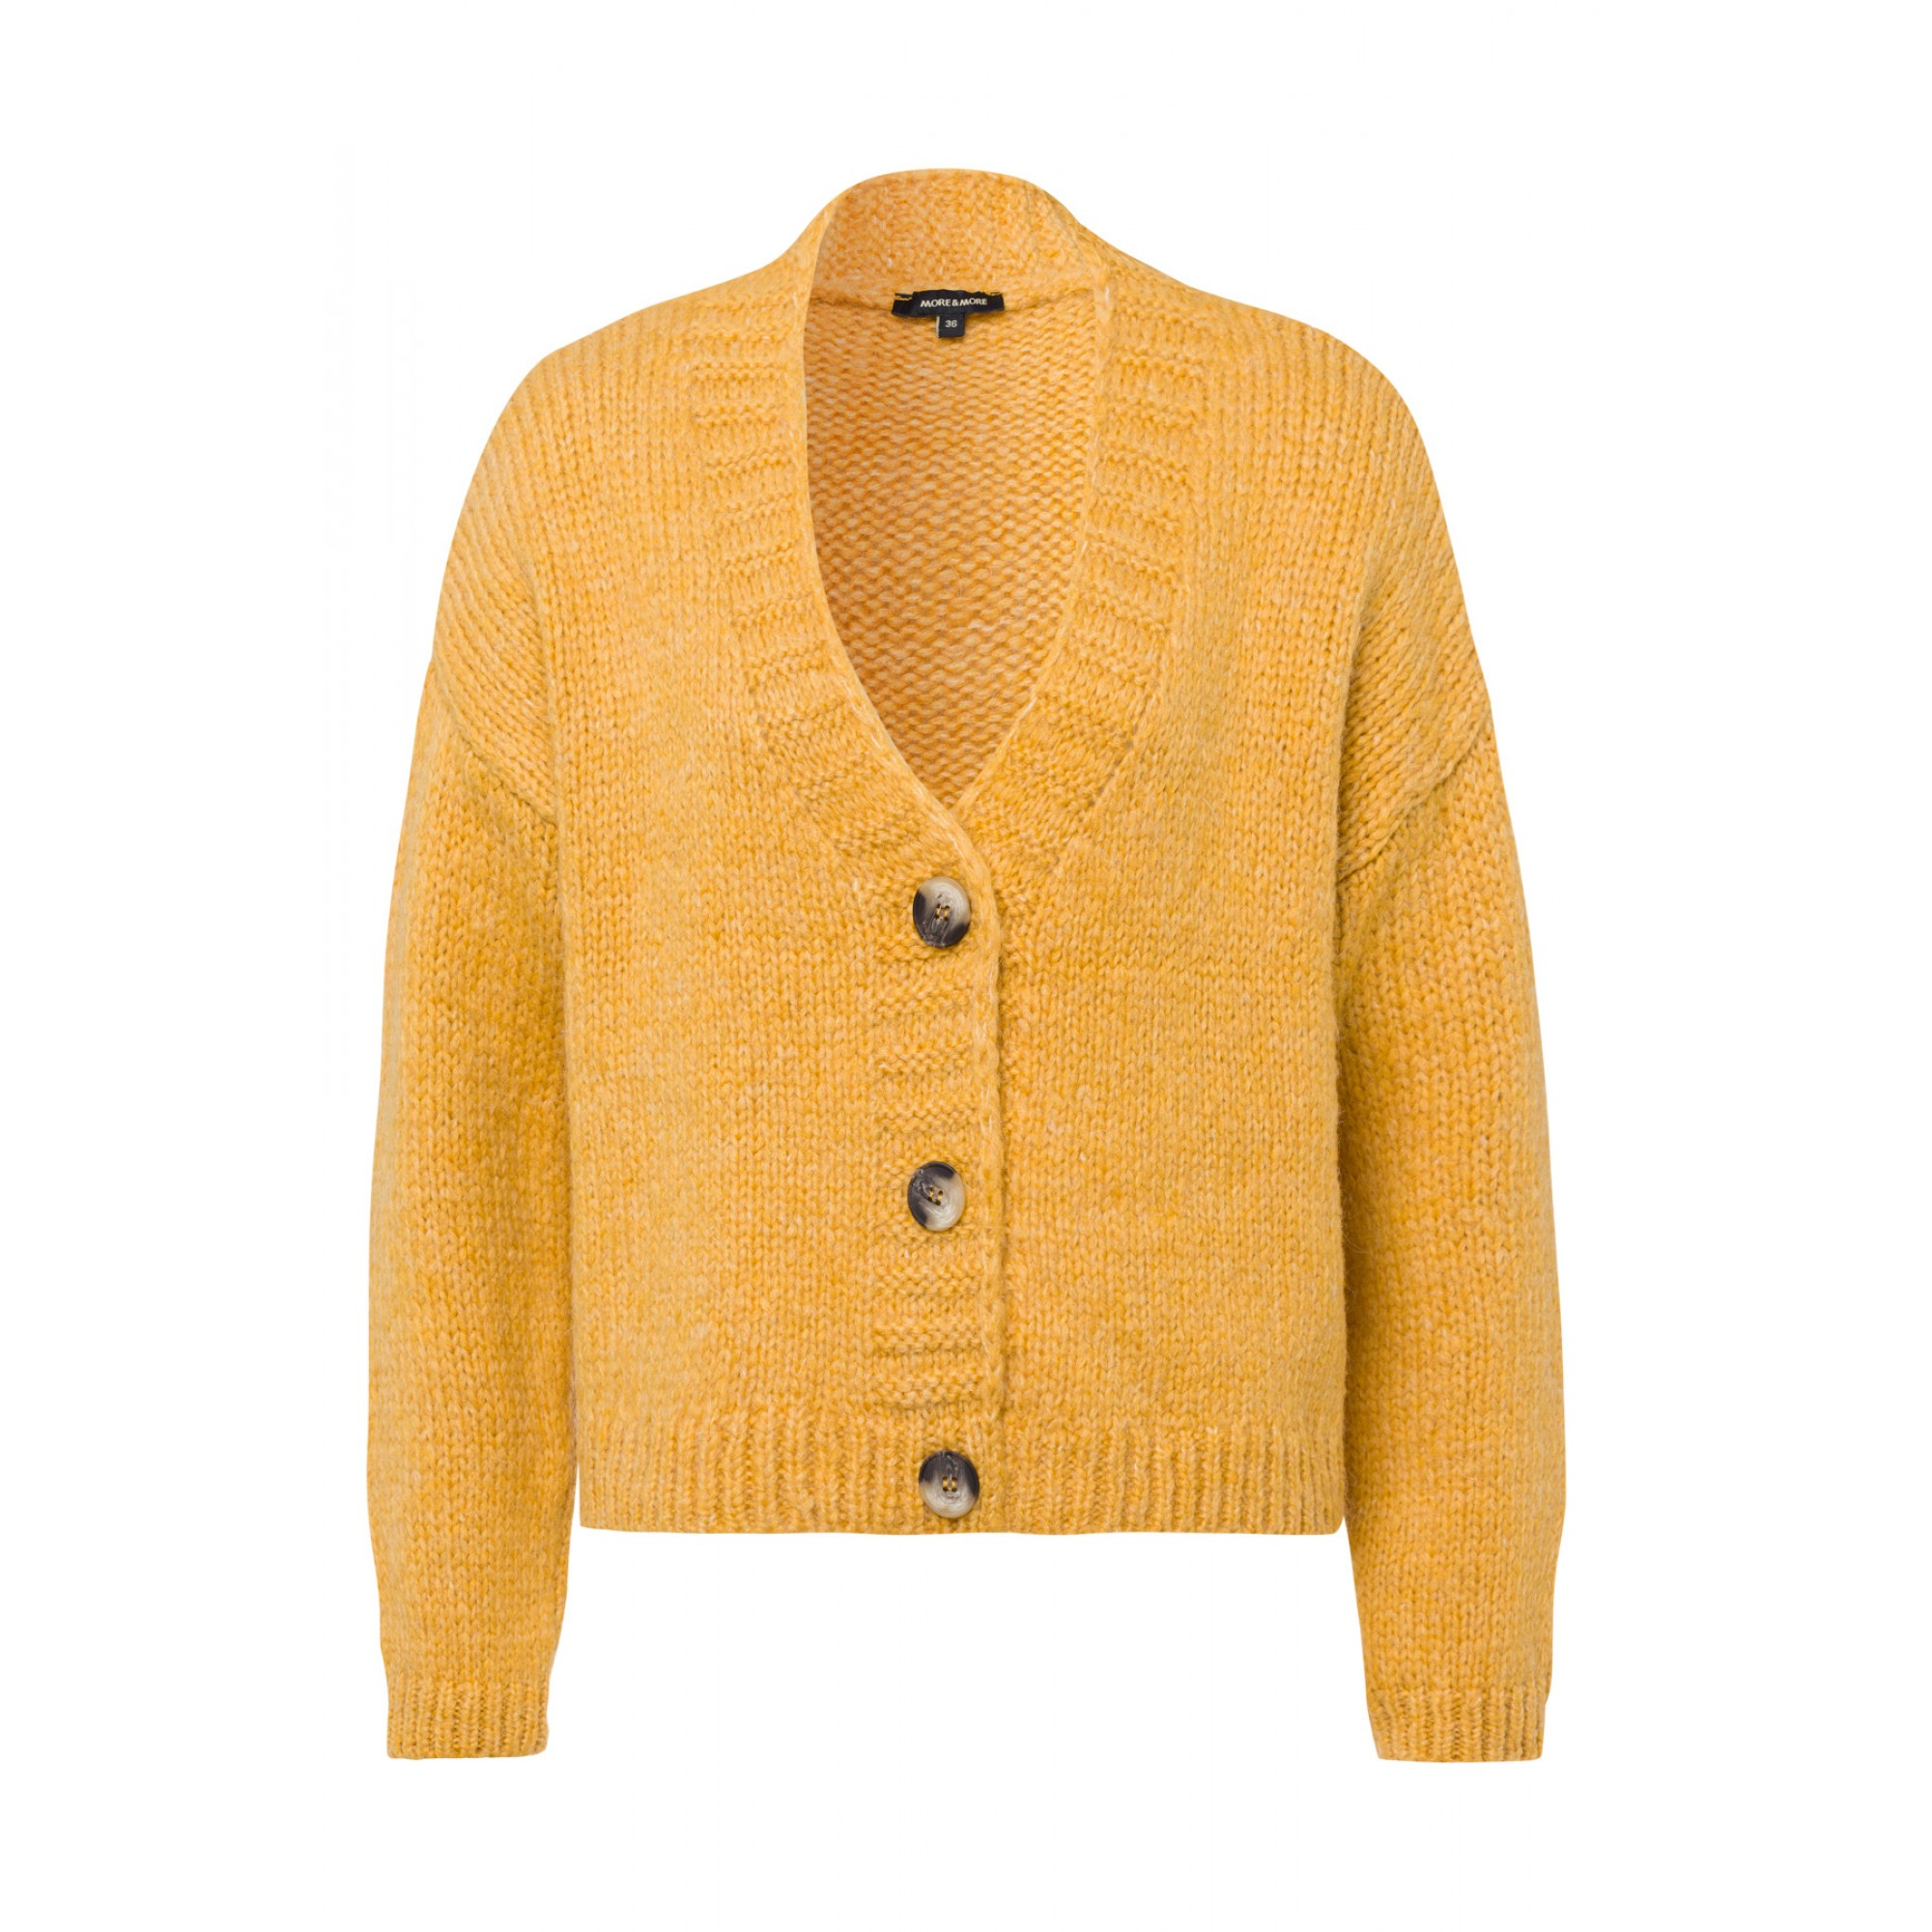 Cardigan, autumn gold 01091222-0183 1